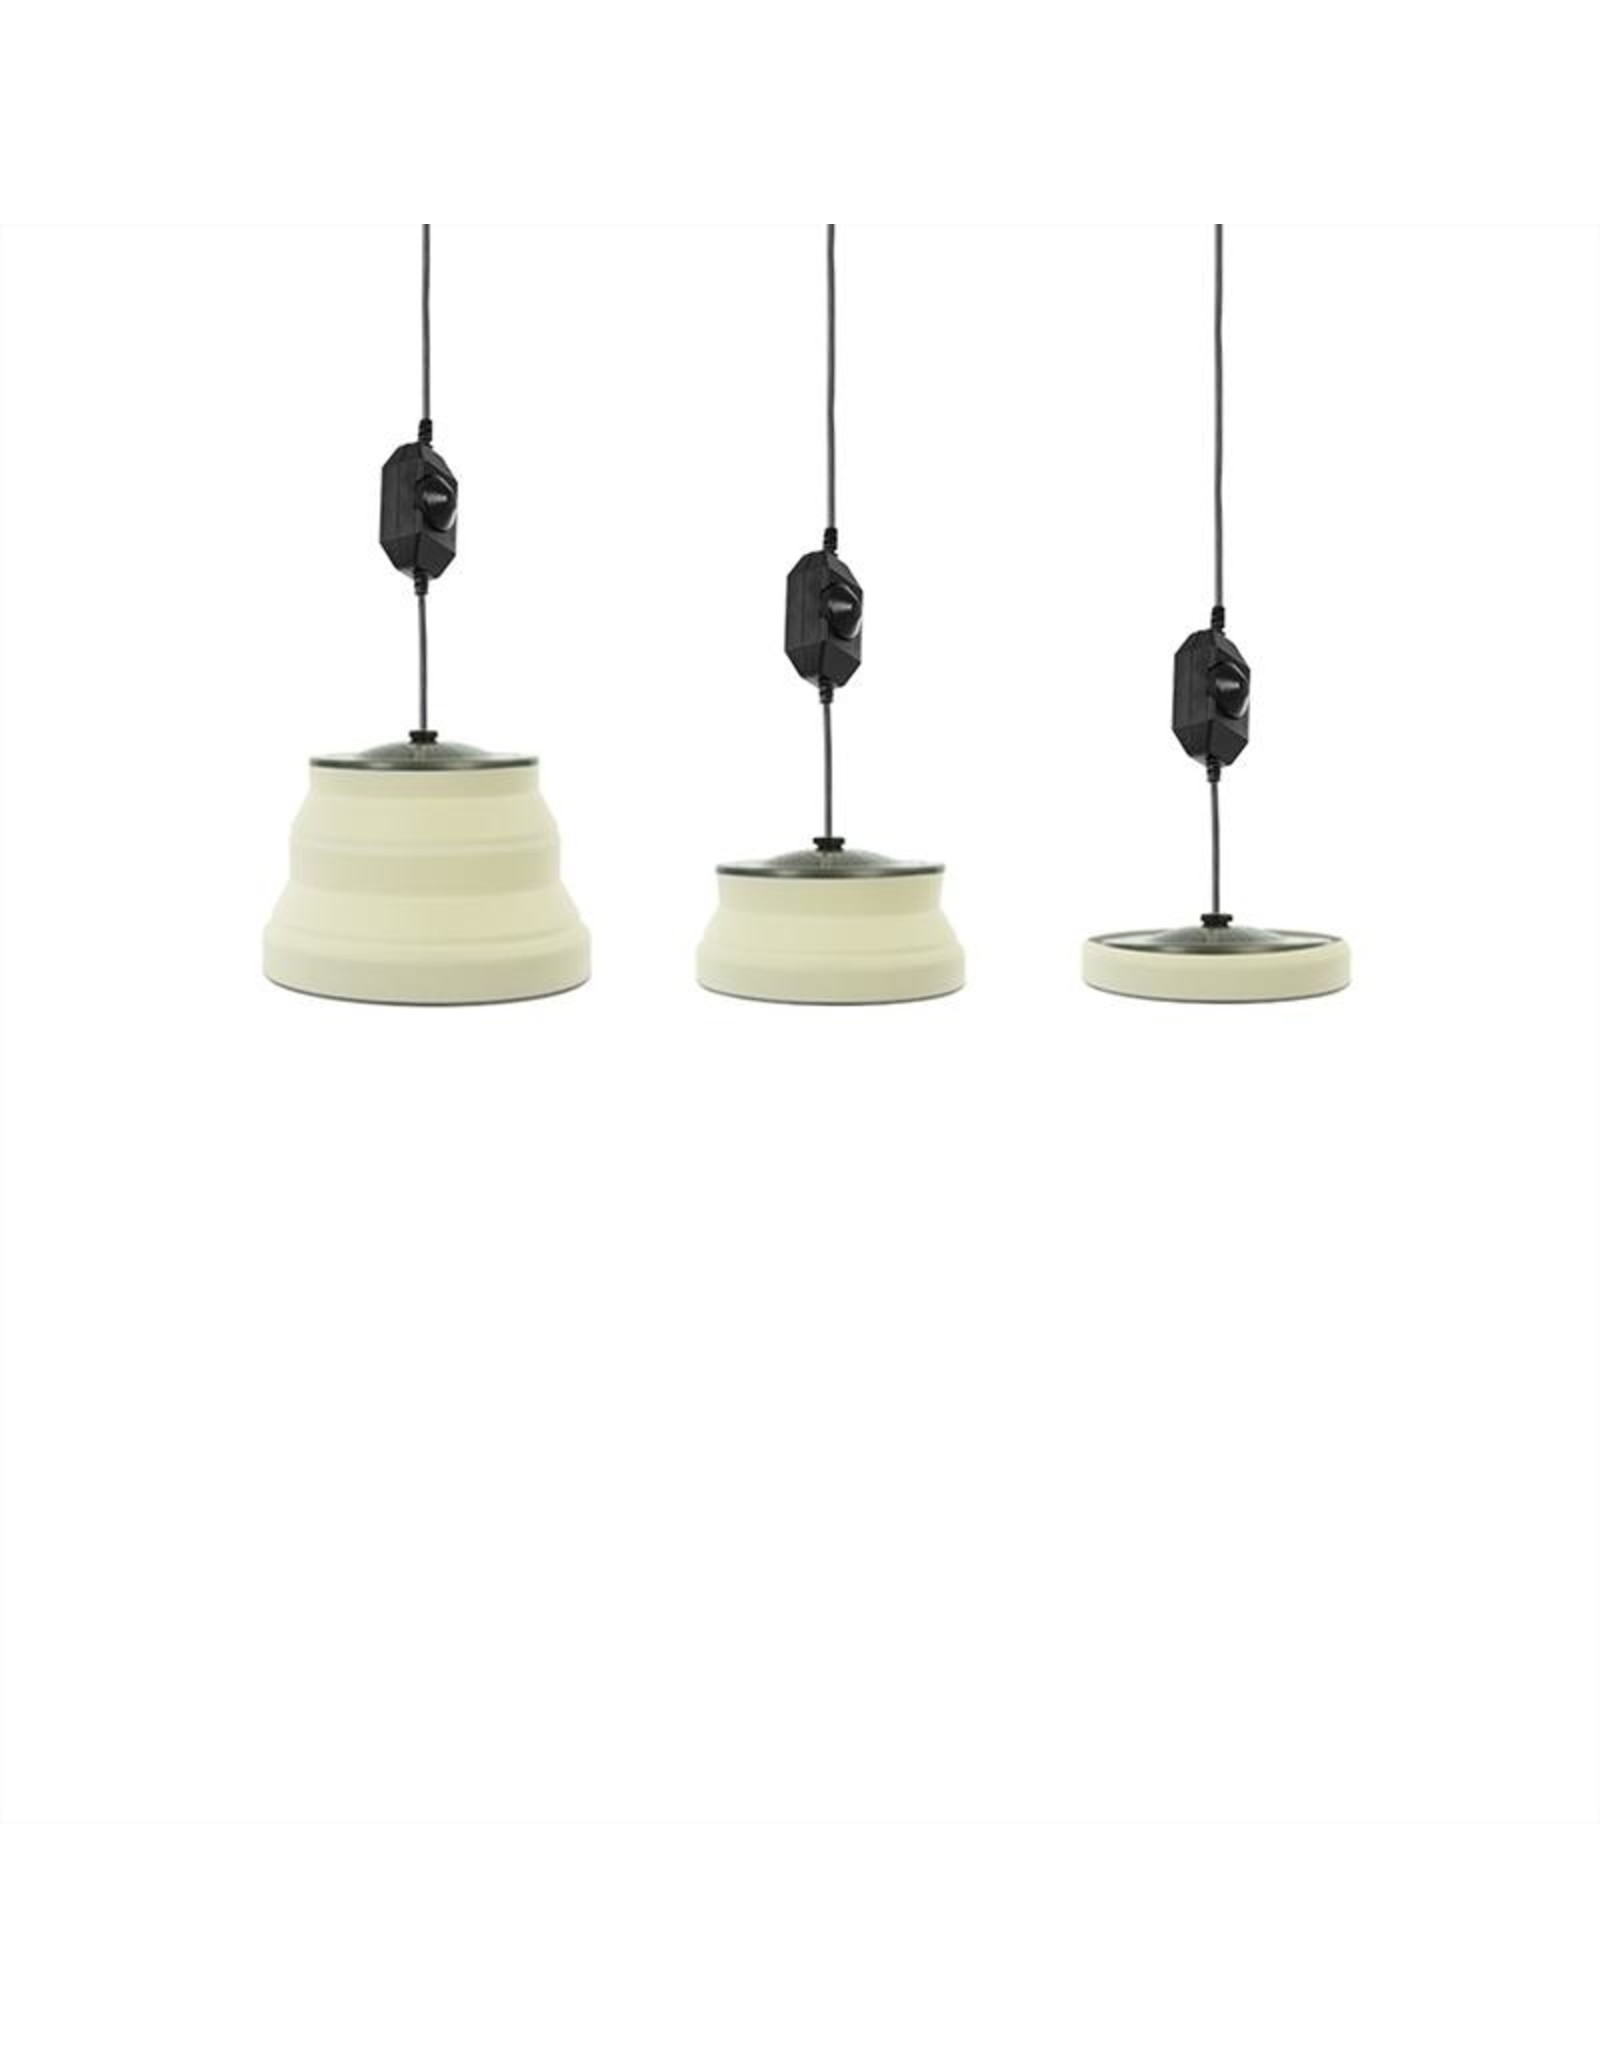 Hanglamp LED opvouwbaar silicone wit ?15cm